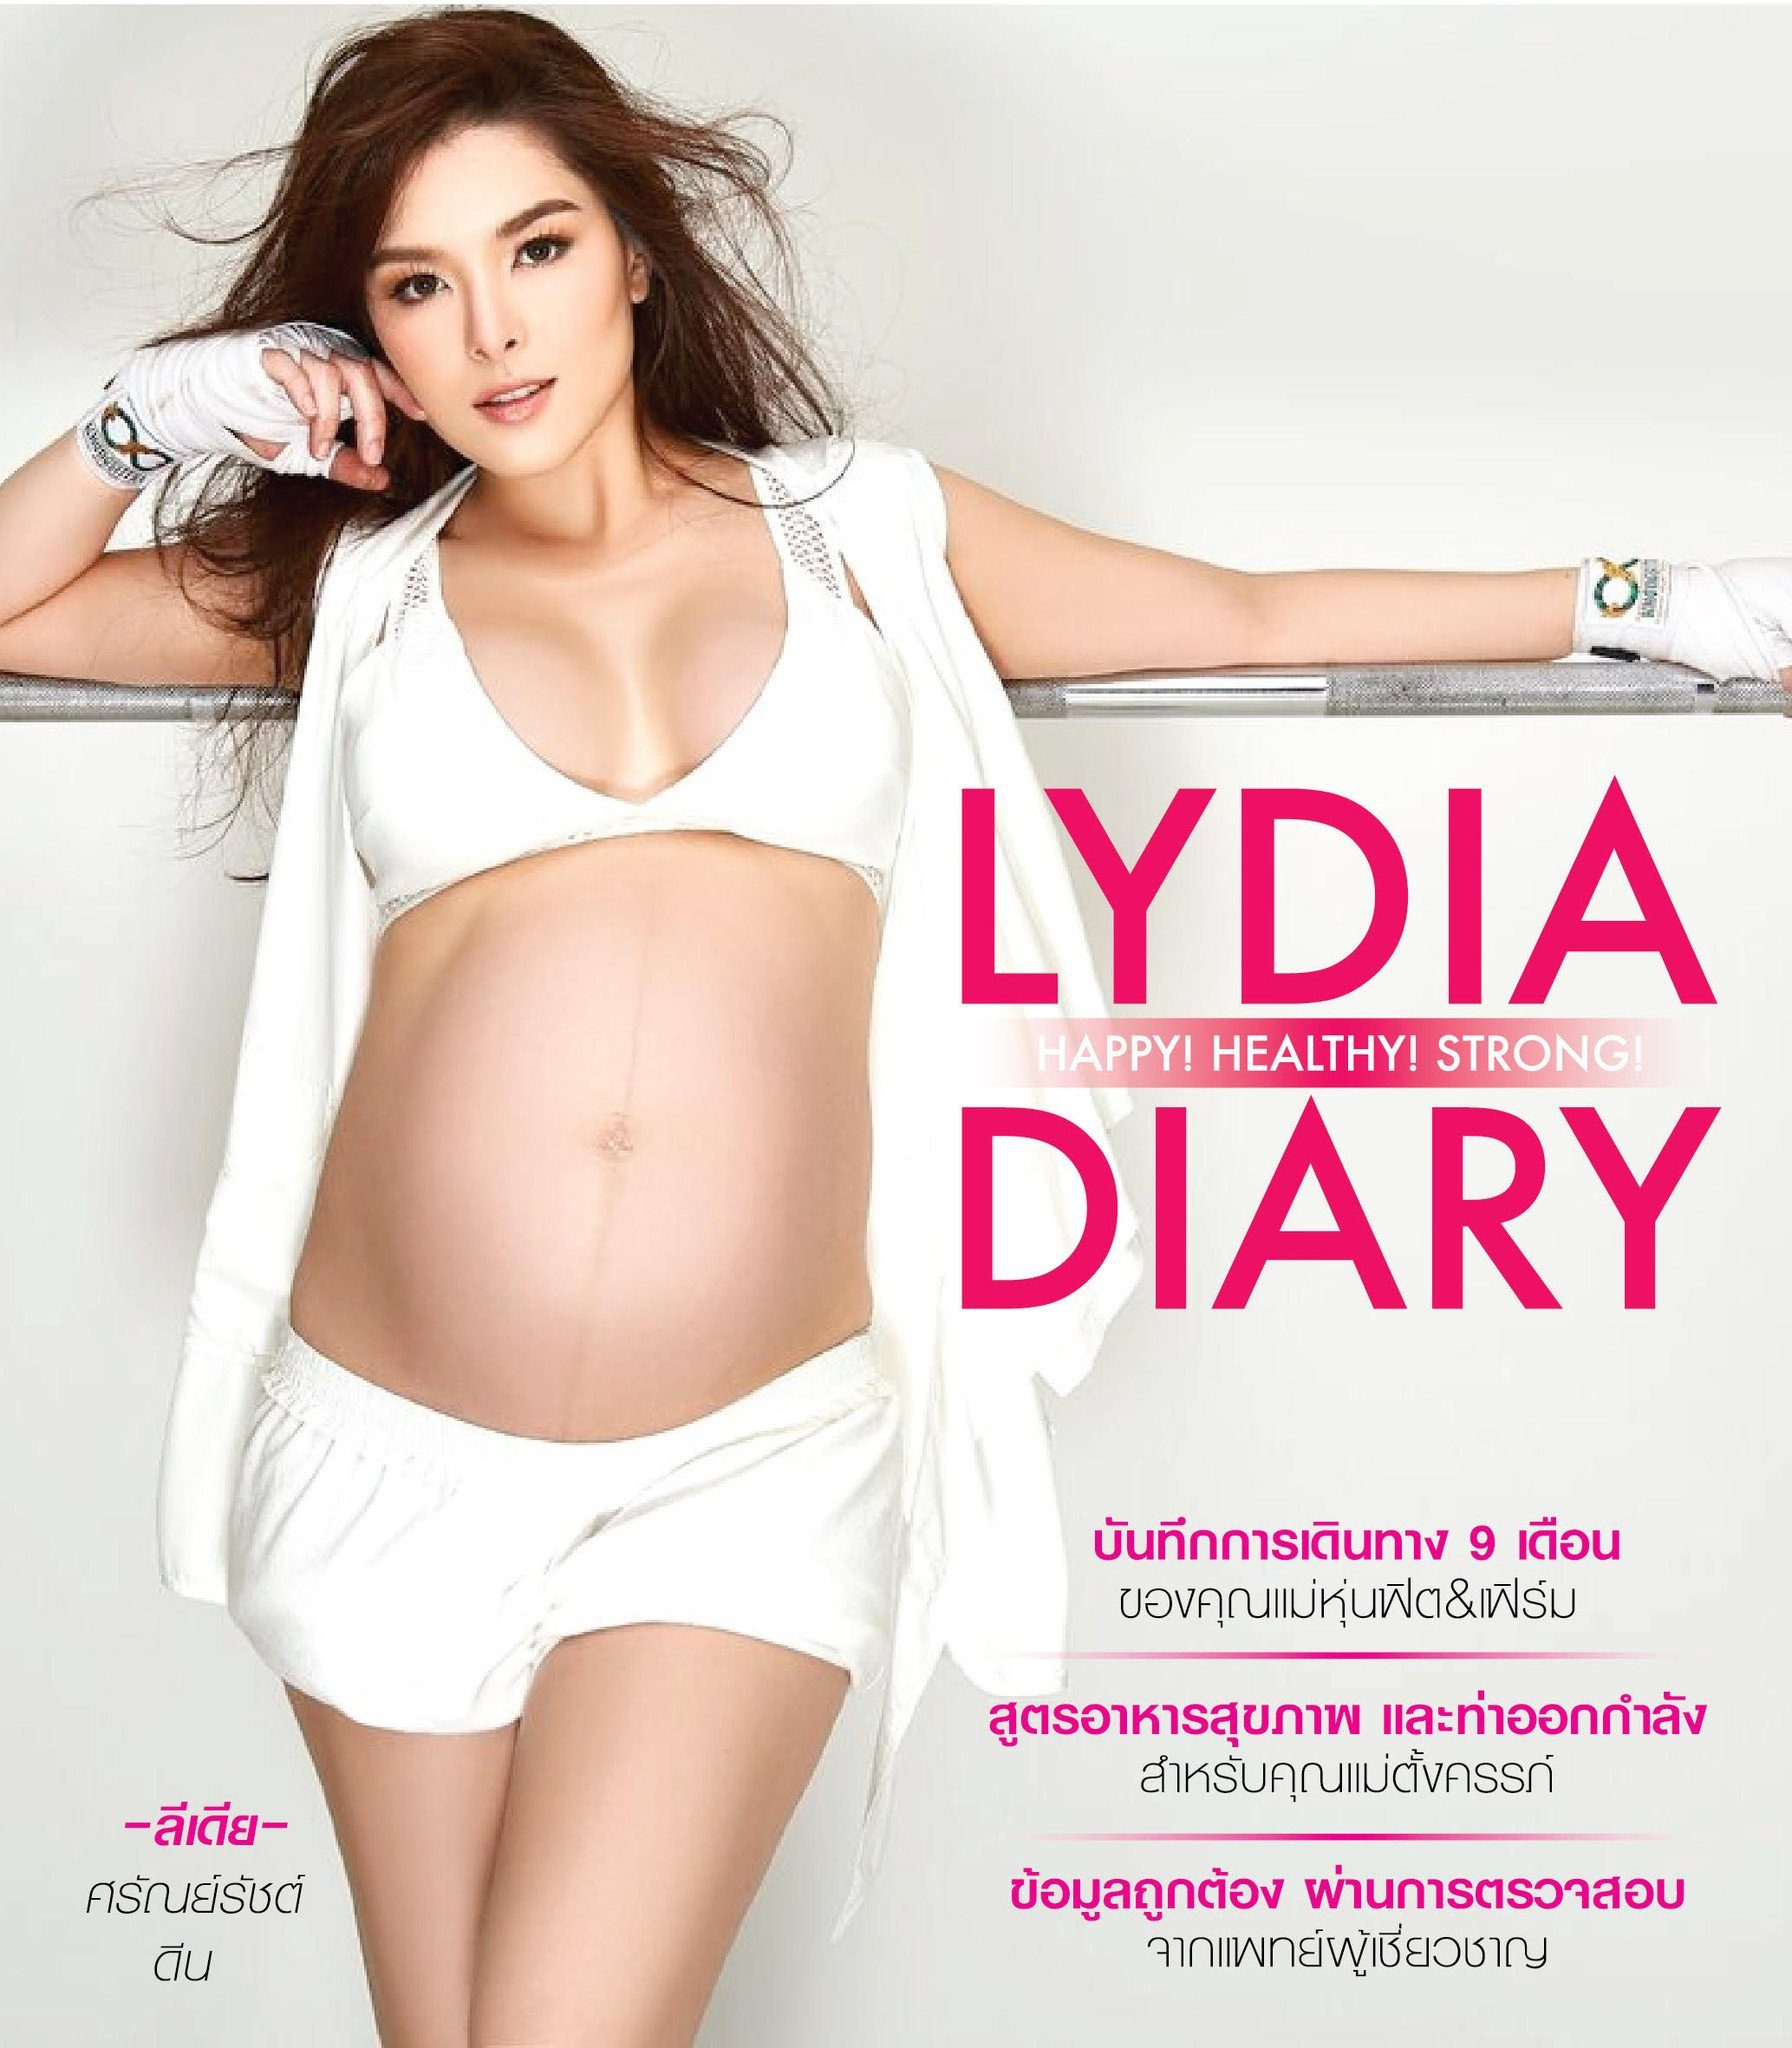 Lydia Diary - Live Happy, Healthy, and Strong while Pregnant